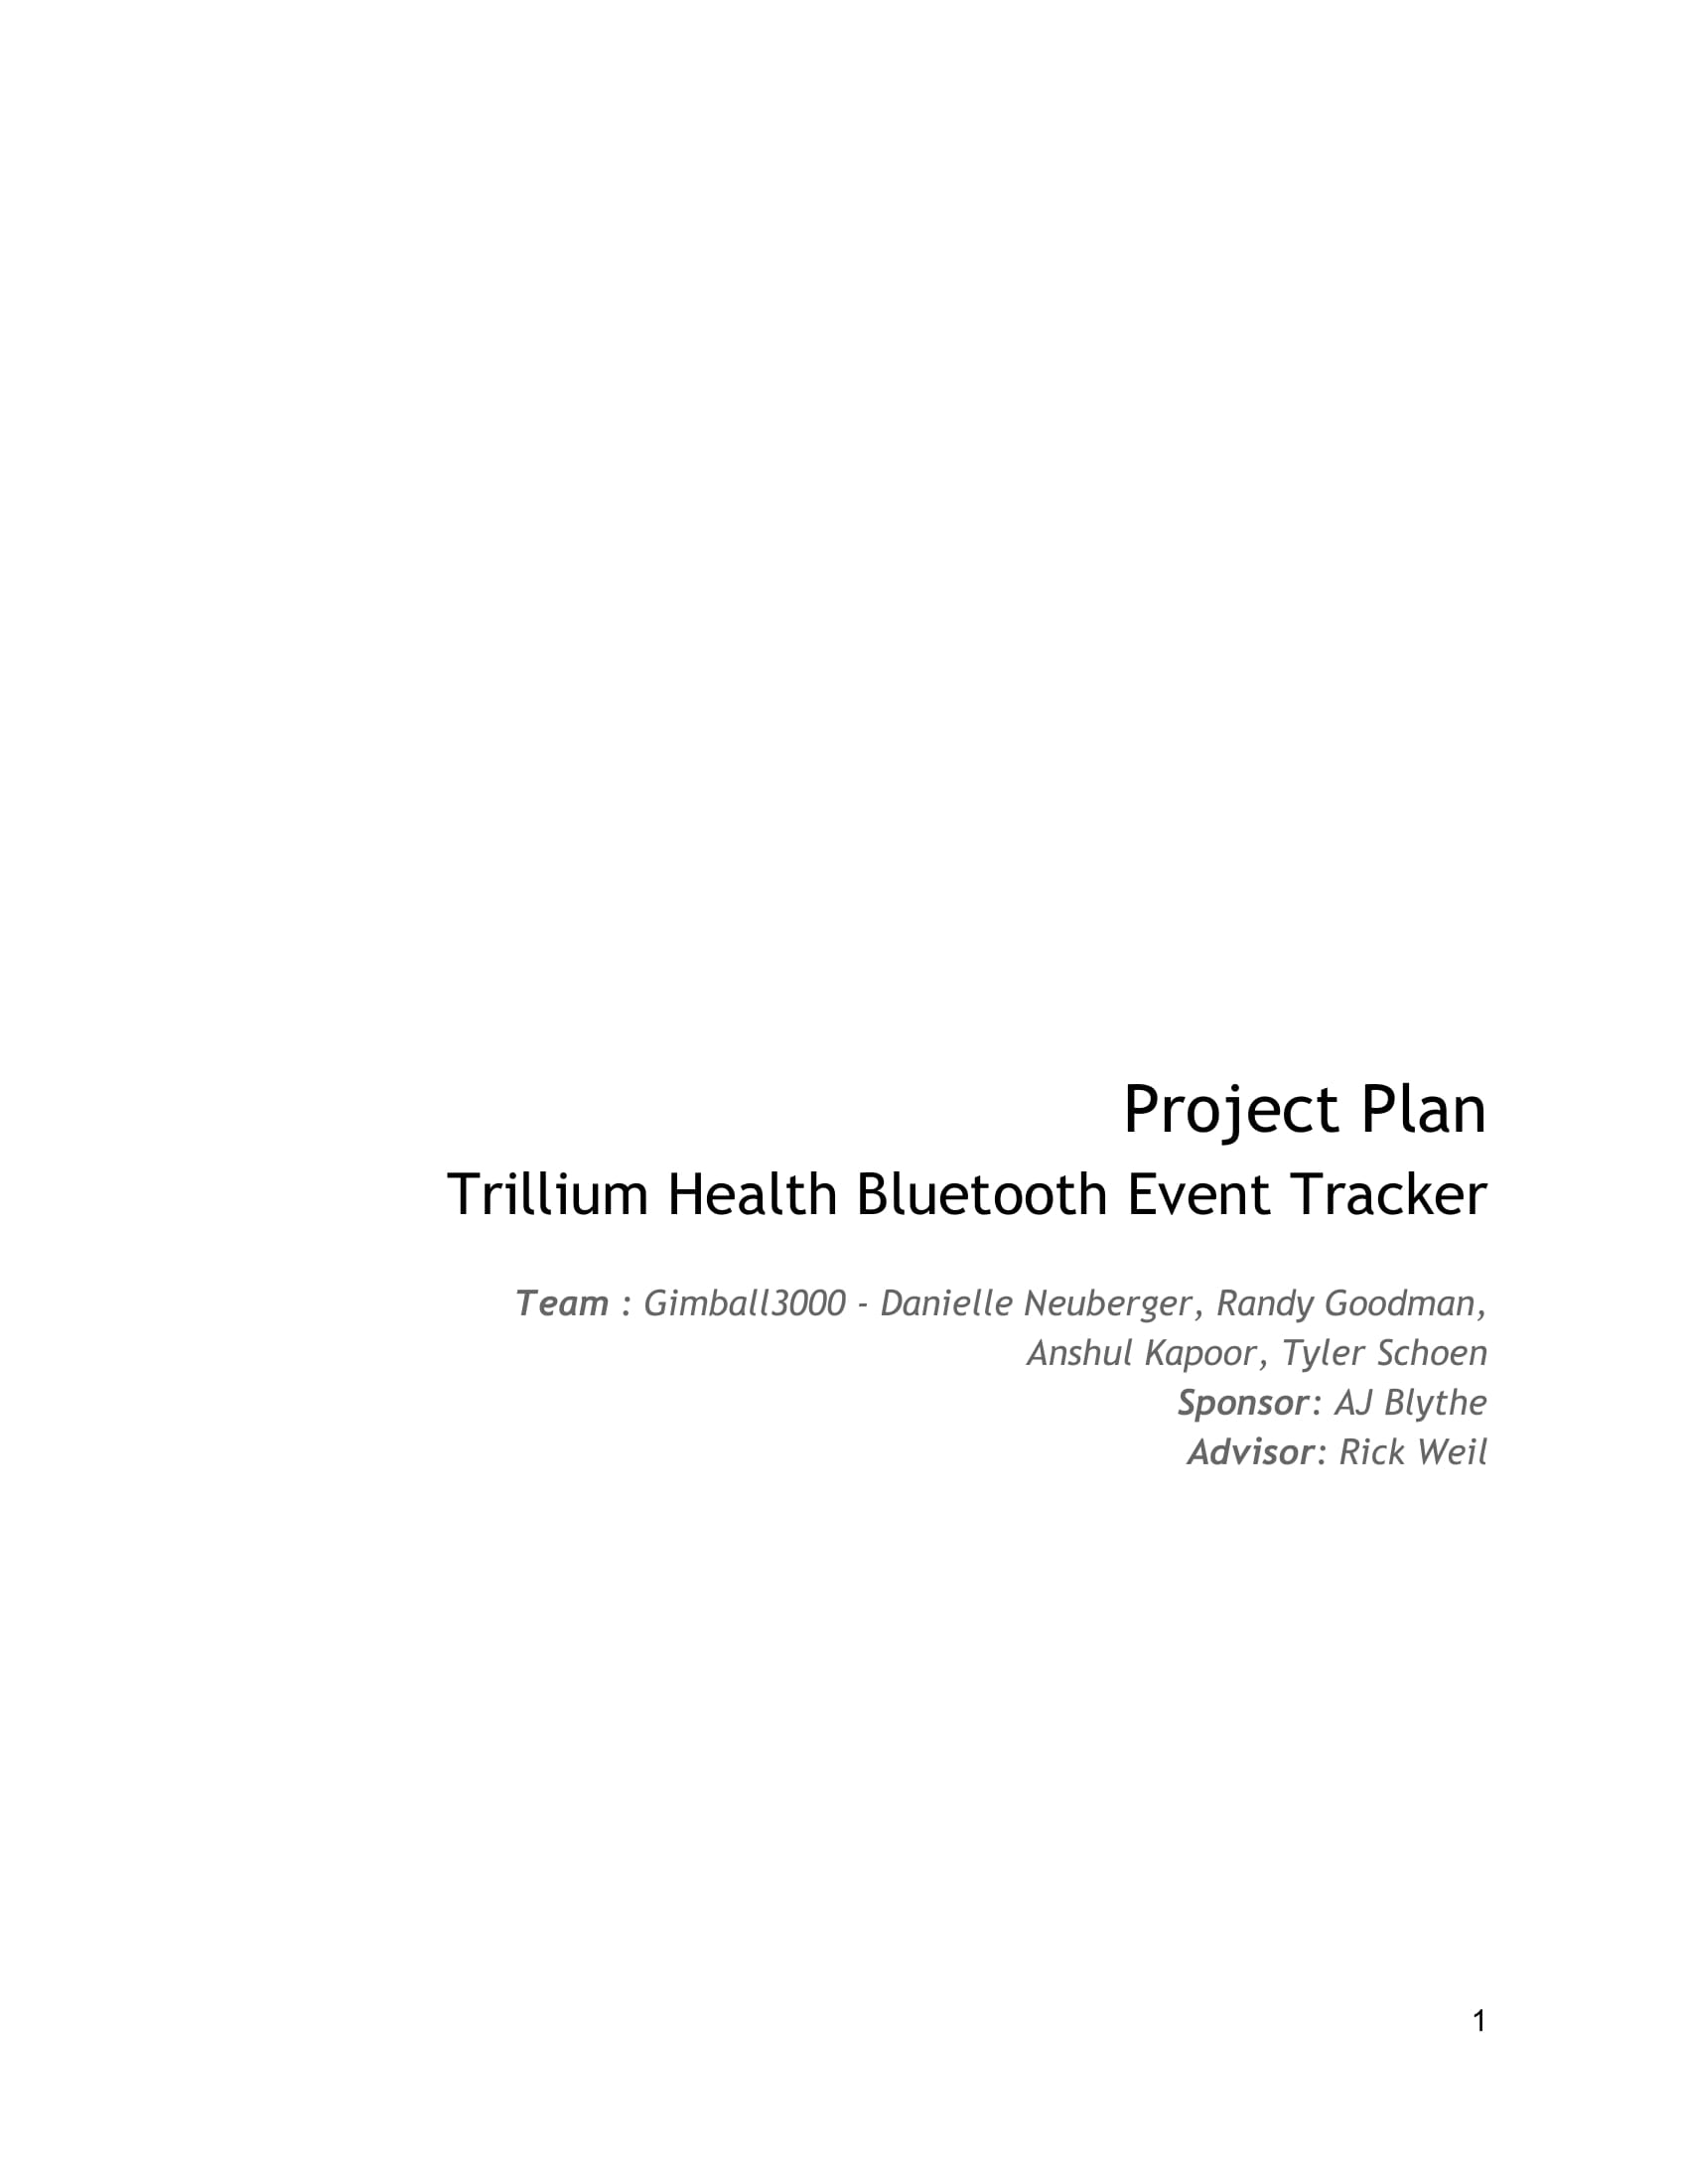 health bluetooth event tracker project plan example